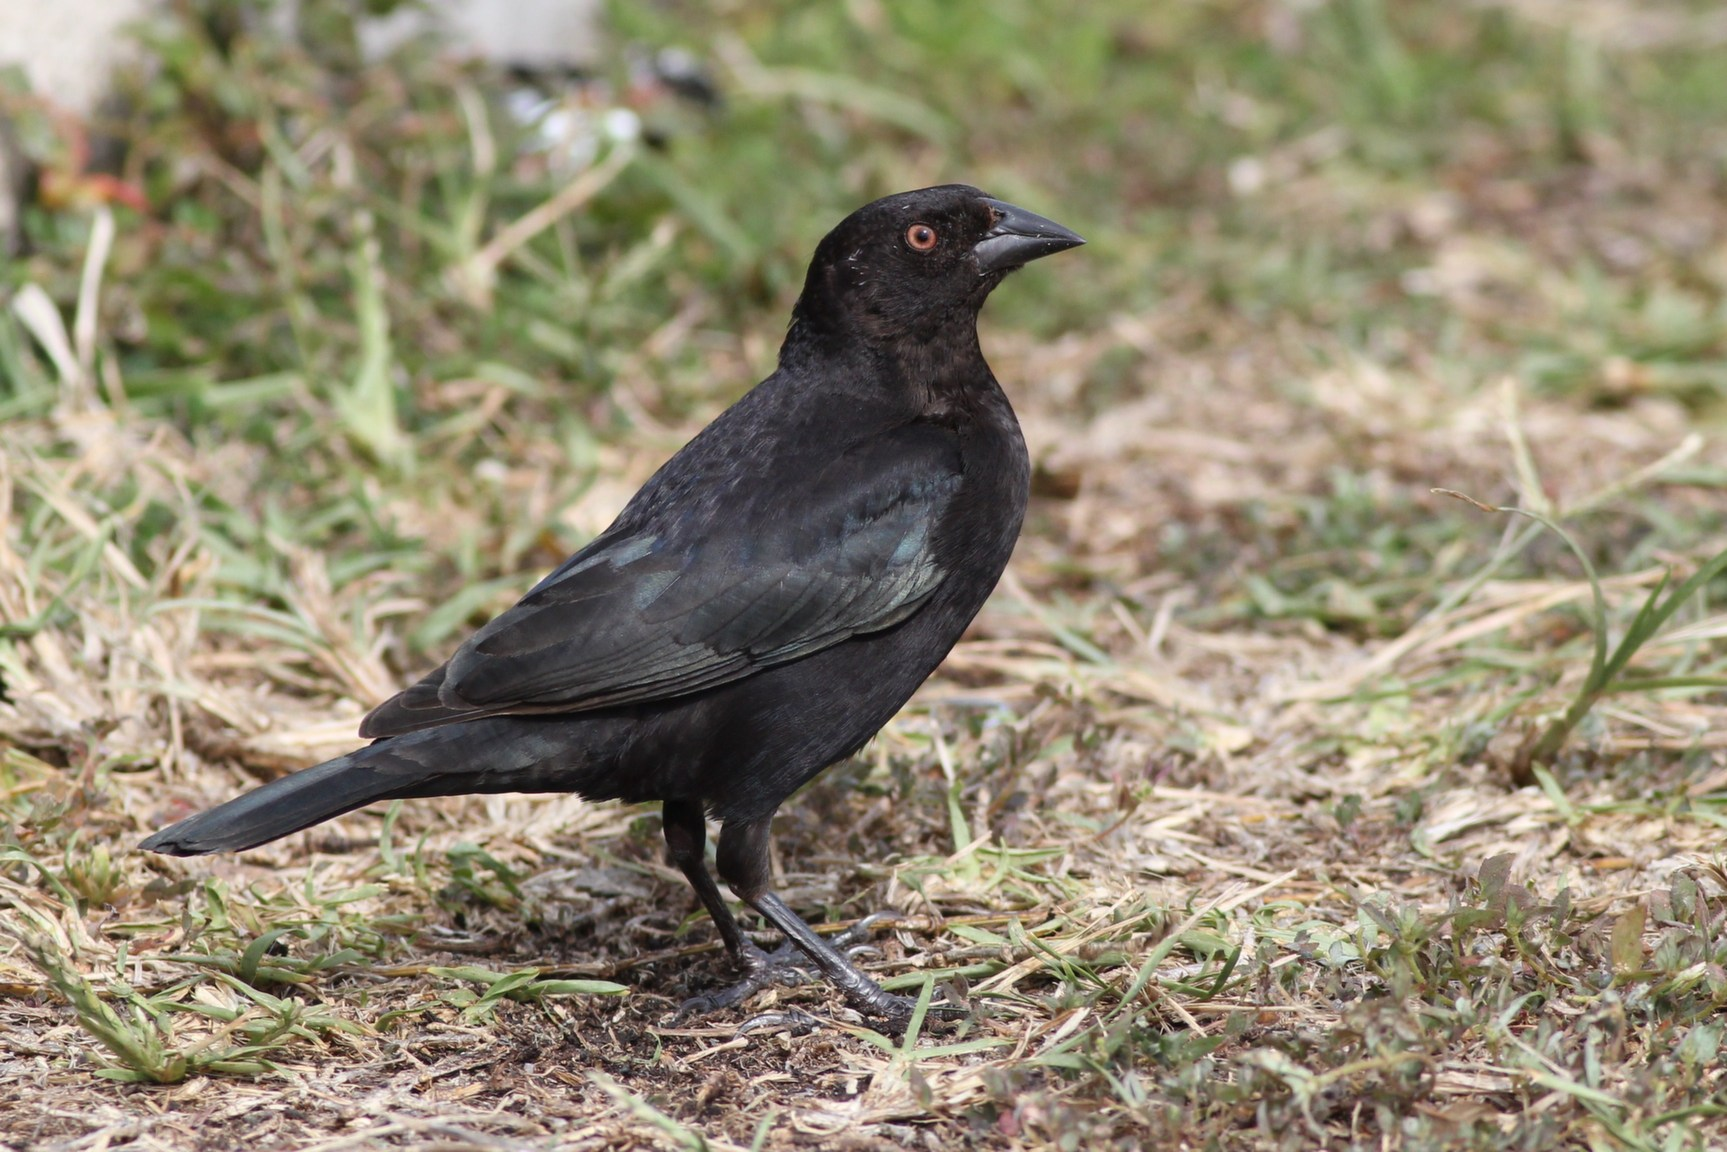 what is the relationship between cowbirds and other birds